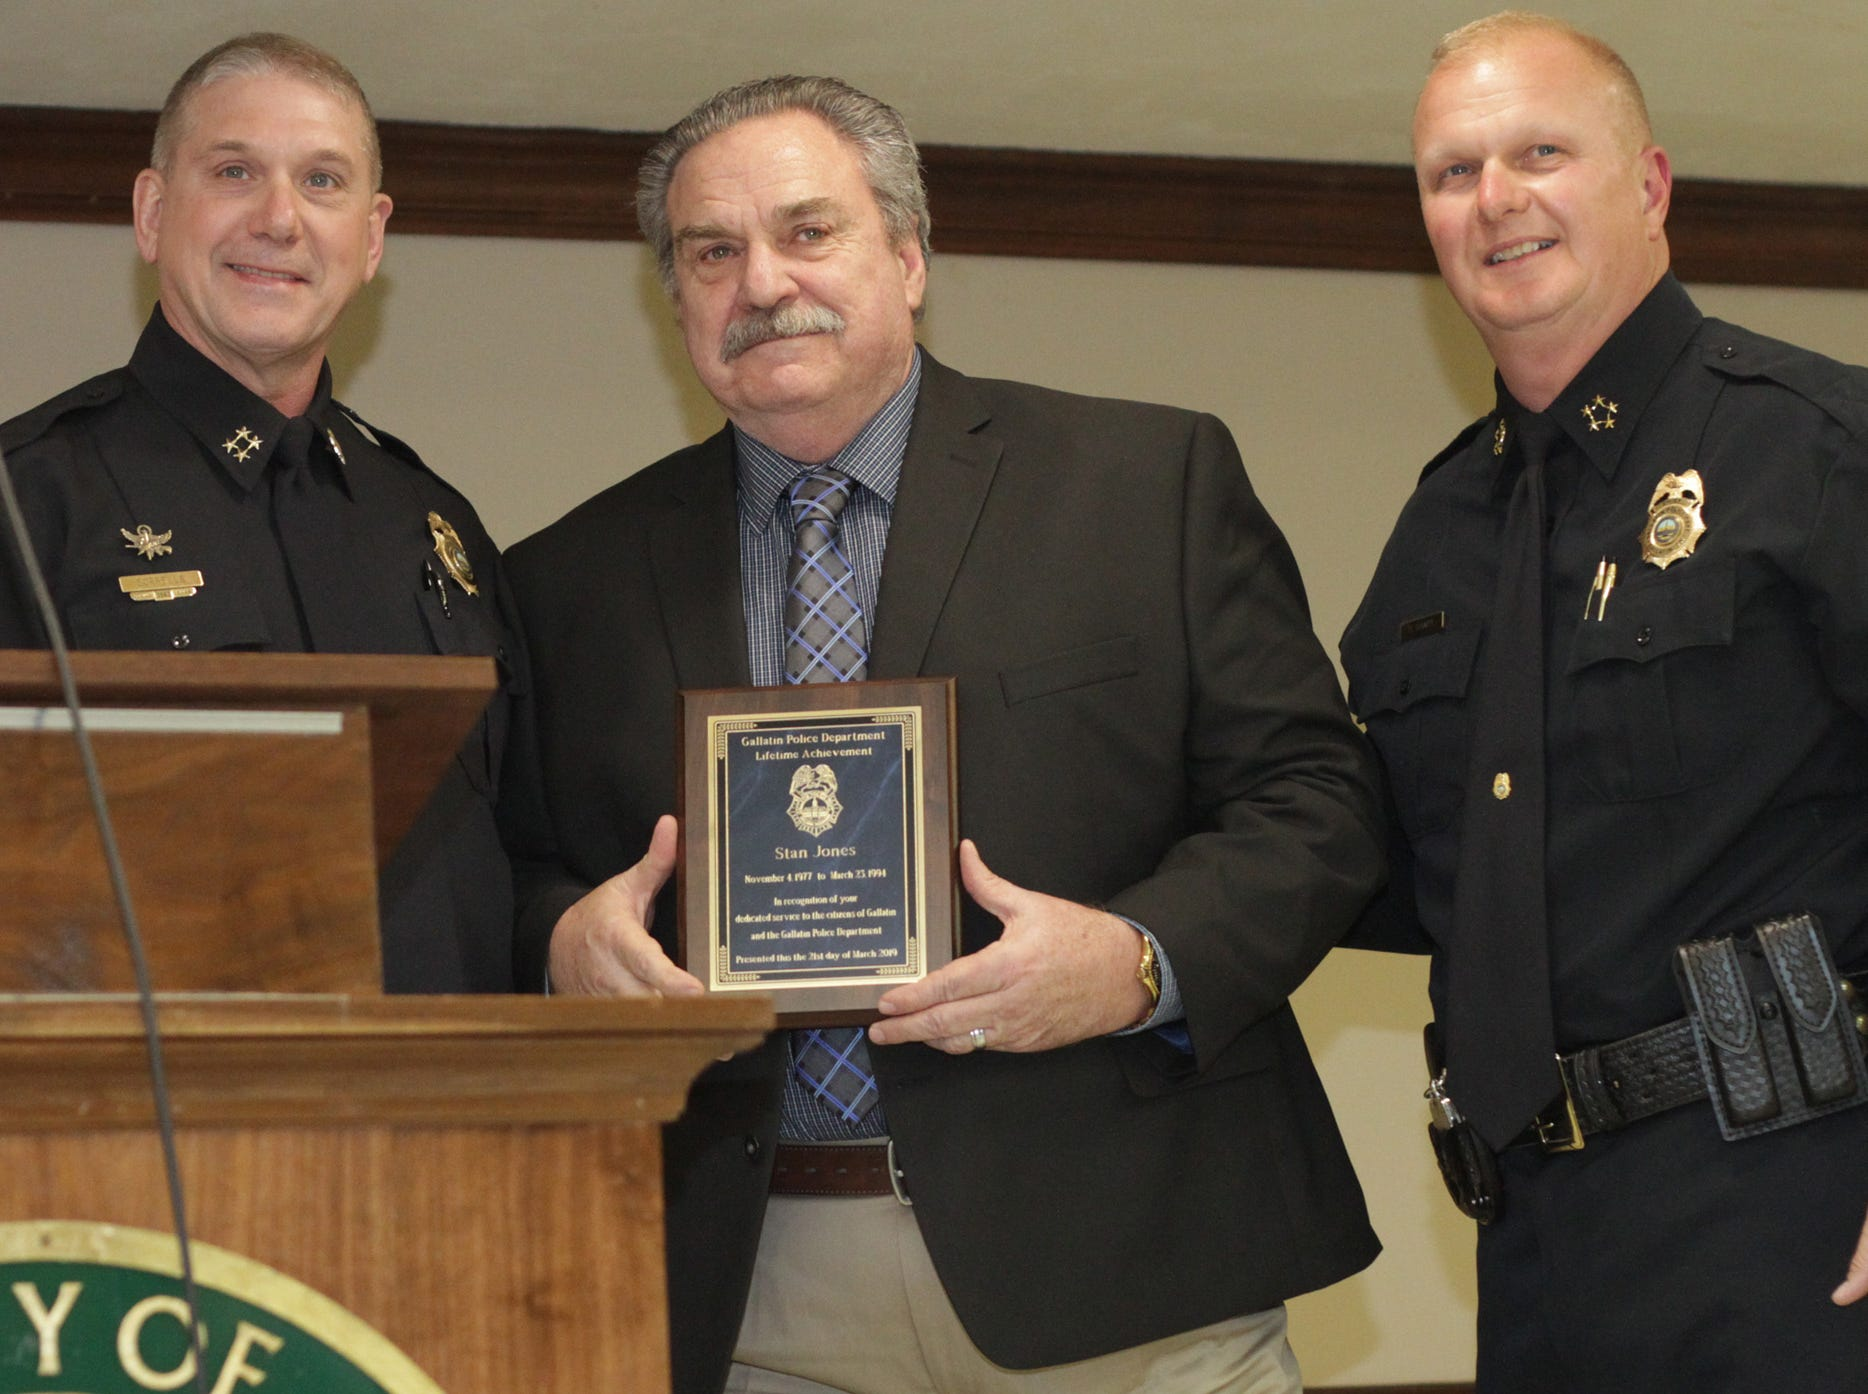 Assistant Chief William Sorrells presents a Lifetime Achievement award to Stan Jones along with Chief Donald Bandy at the Gallatin Police Dept. Awards Ceremony foe 2018 Achievements on Thursday, March 21, 2019.